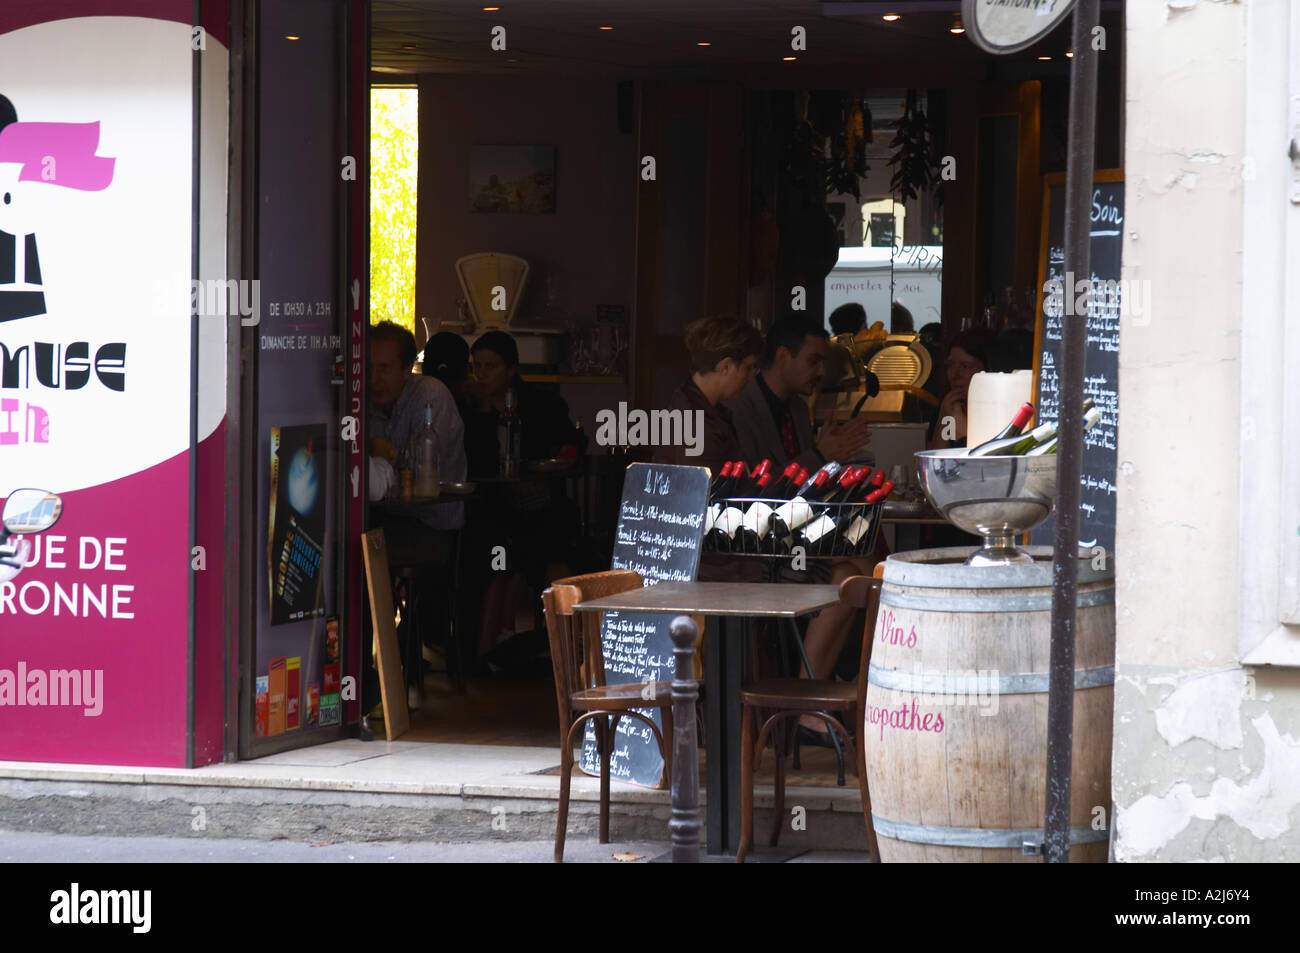 Magasin Muse Muse Restaurant Photos Muse Restaurant Images Alamy